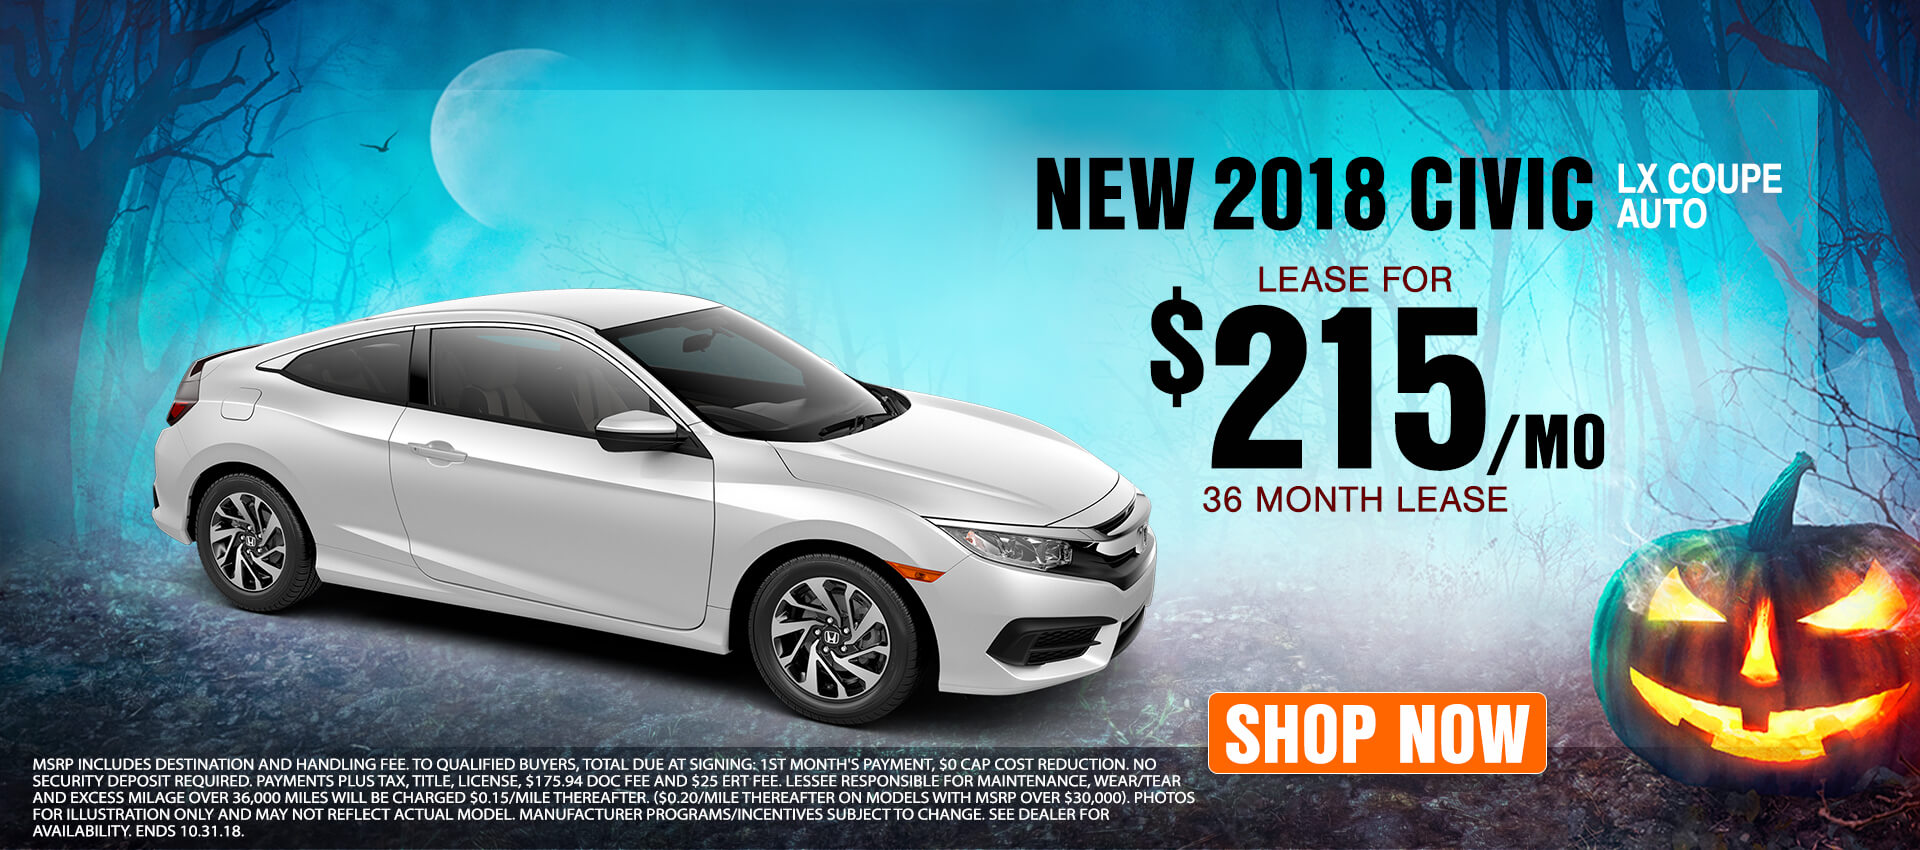 Civic Coupe - Lease for $215